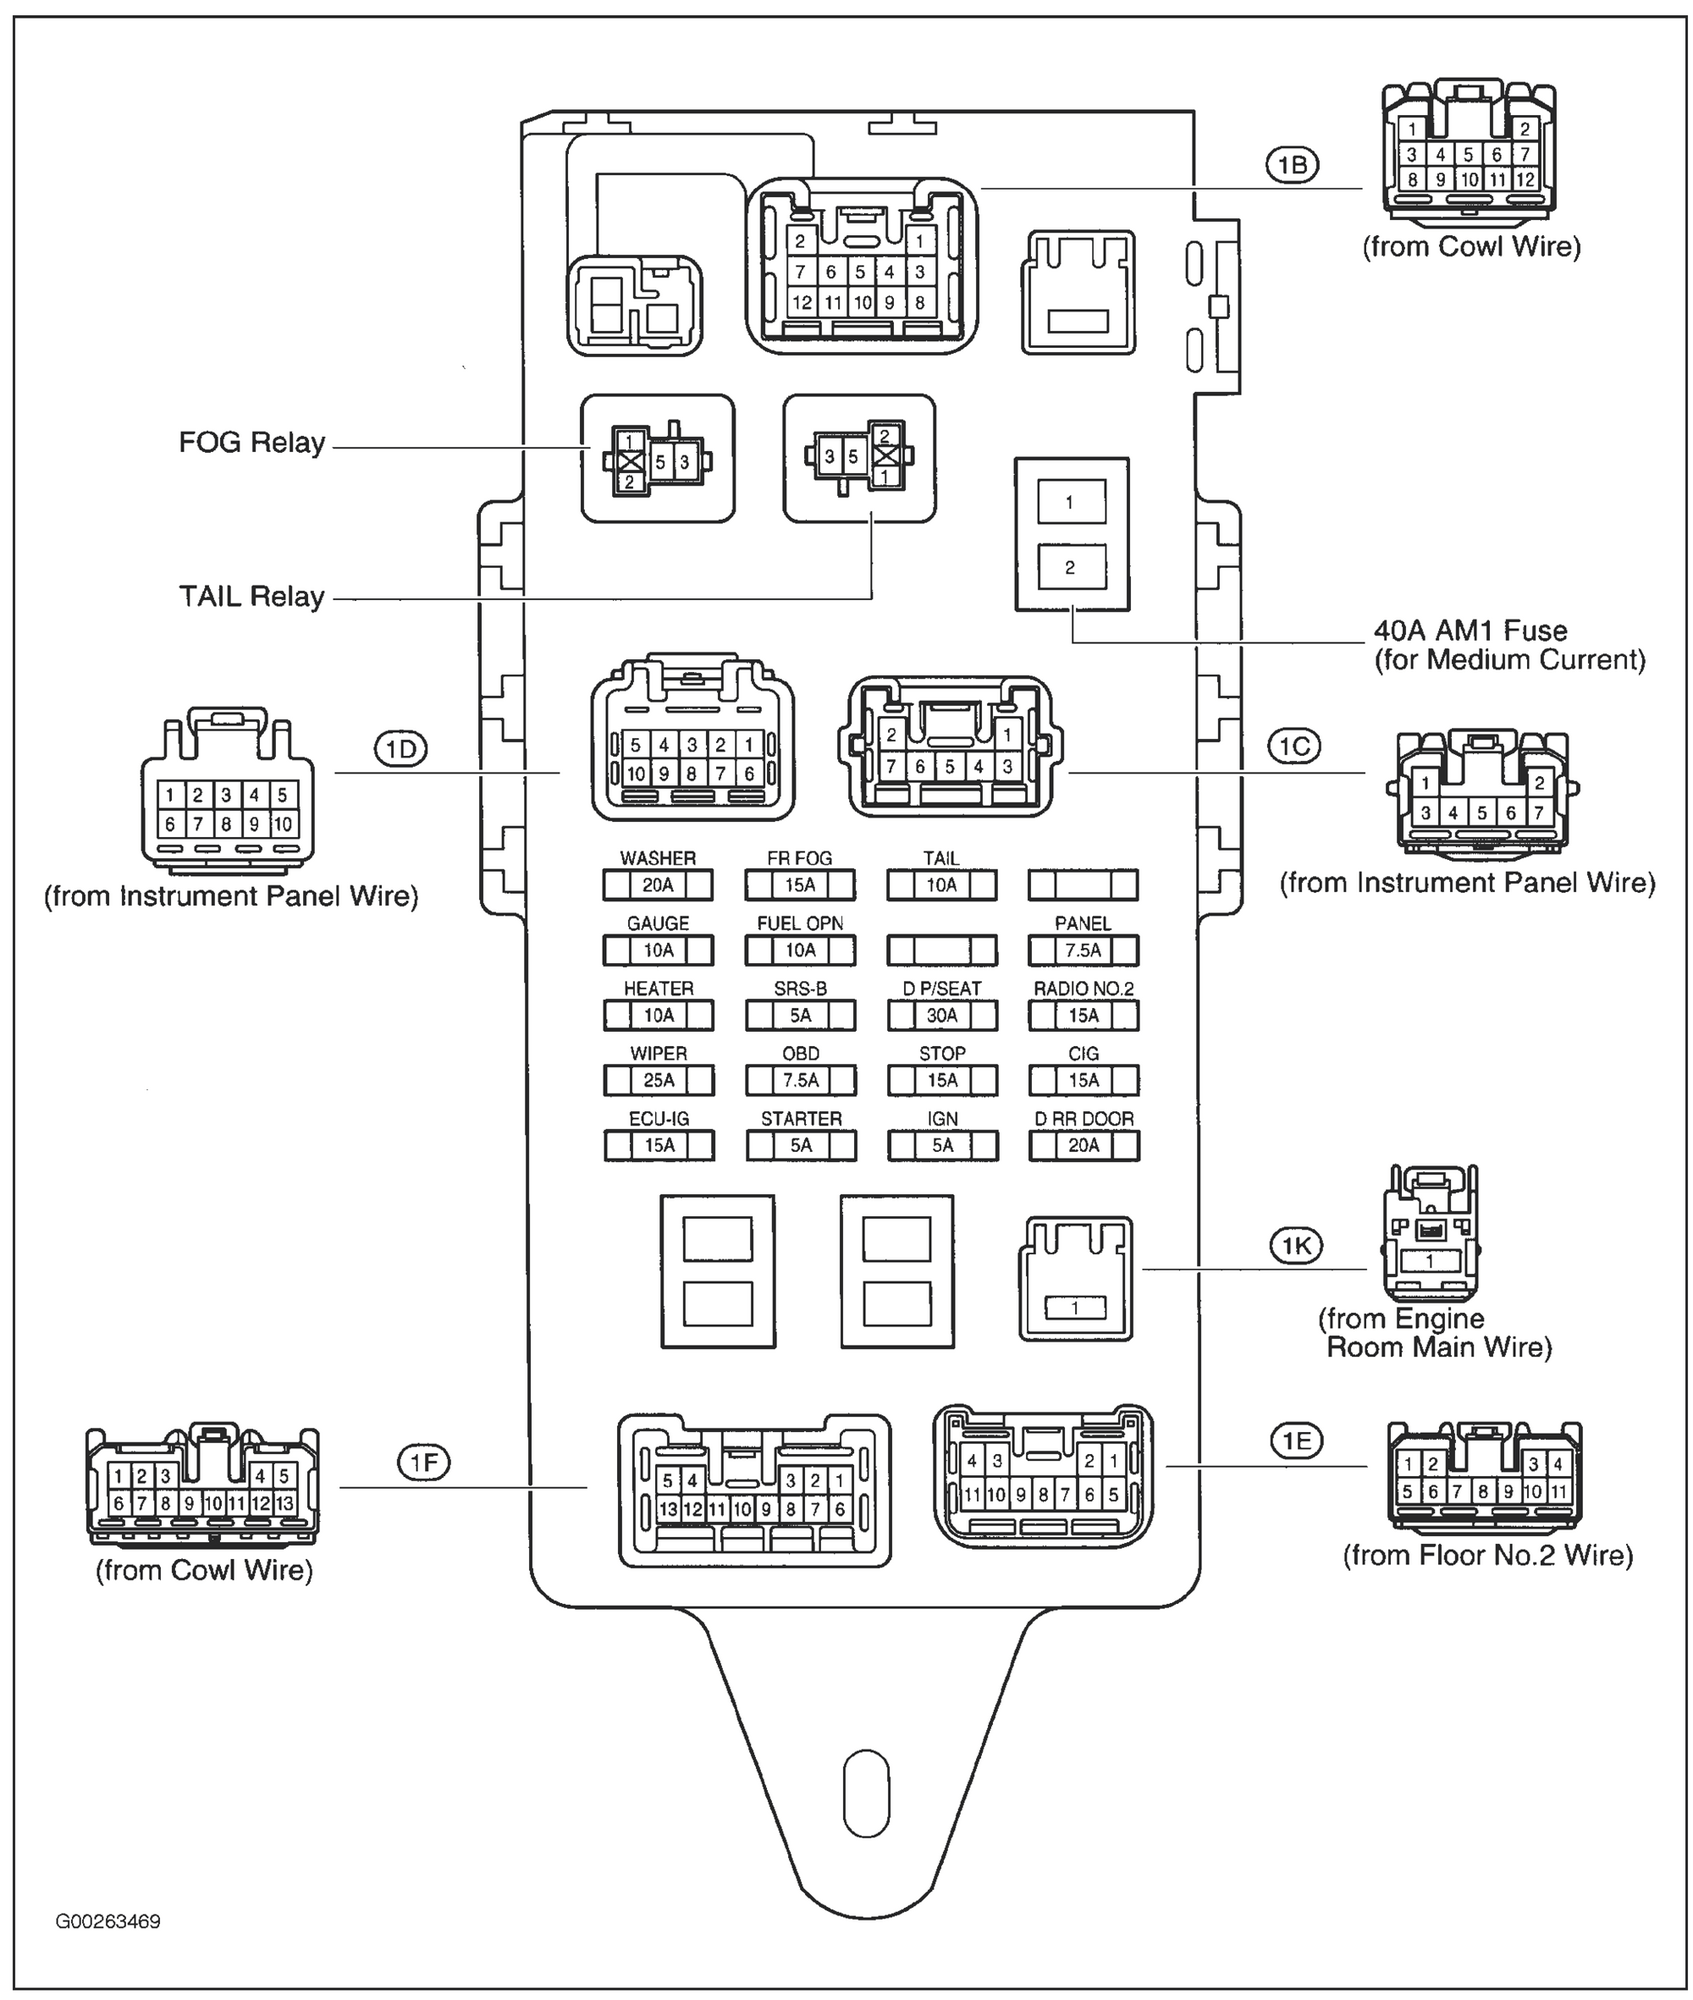 hight resolution of 2005 lexus es 330 fuse box diagram worksheet and wiring diagram u2022 rh bookinc co 2005